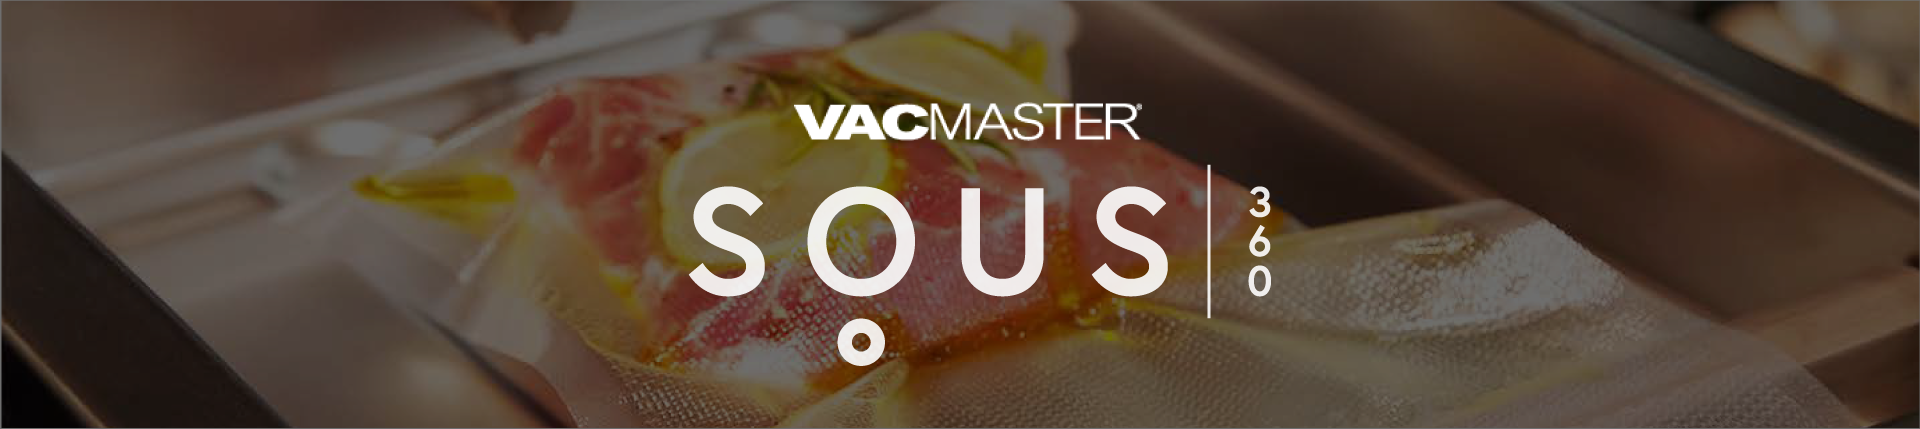 VacMaster Sous 360